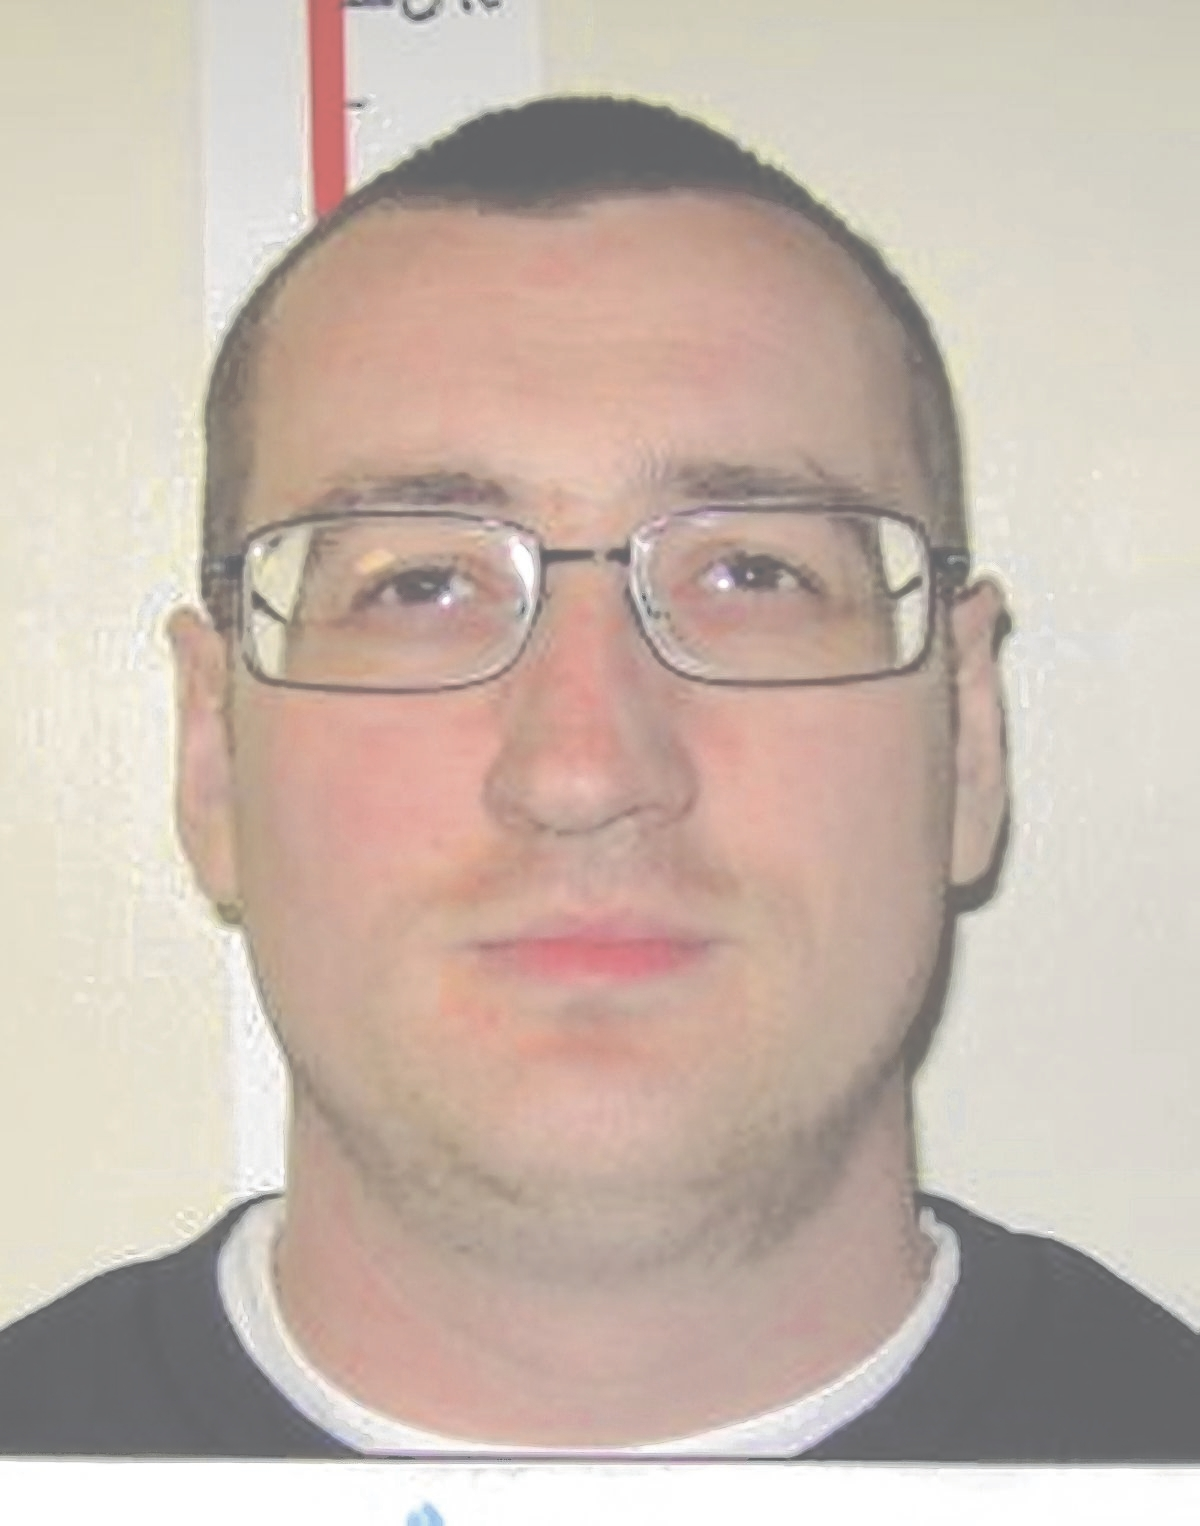 Police search for prison absconder in Clacton